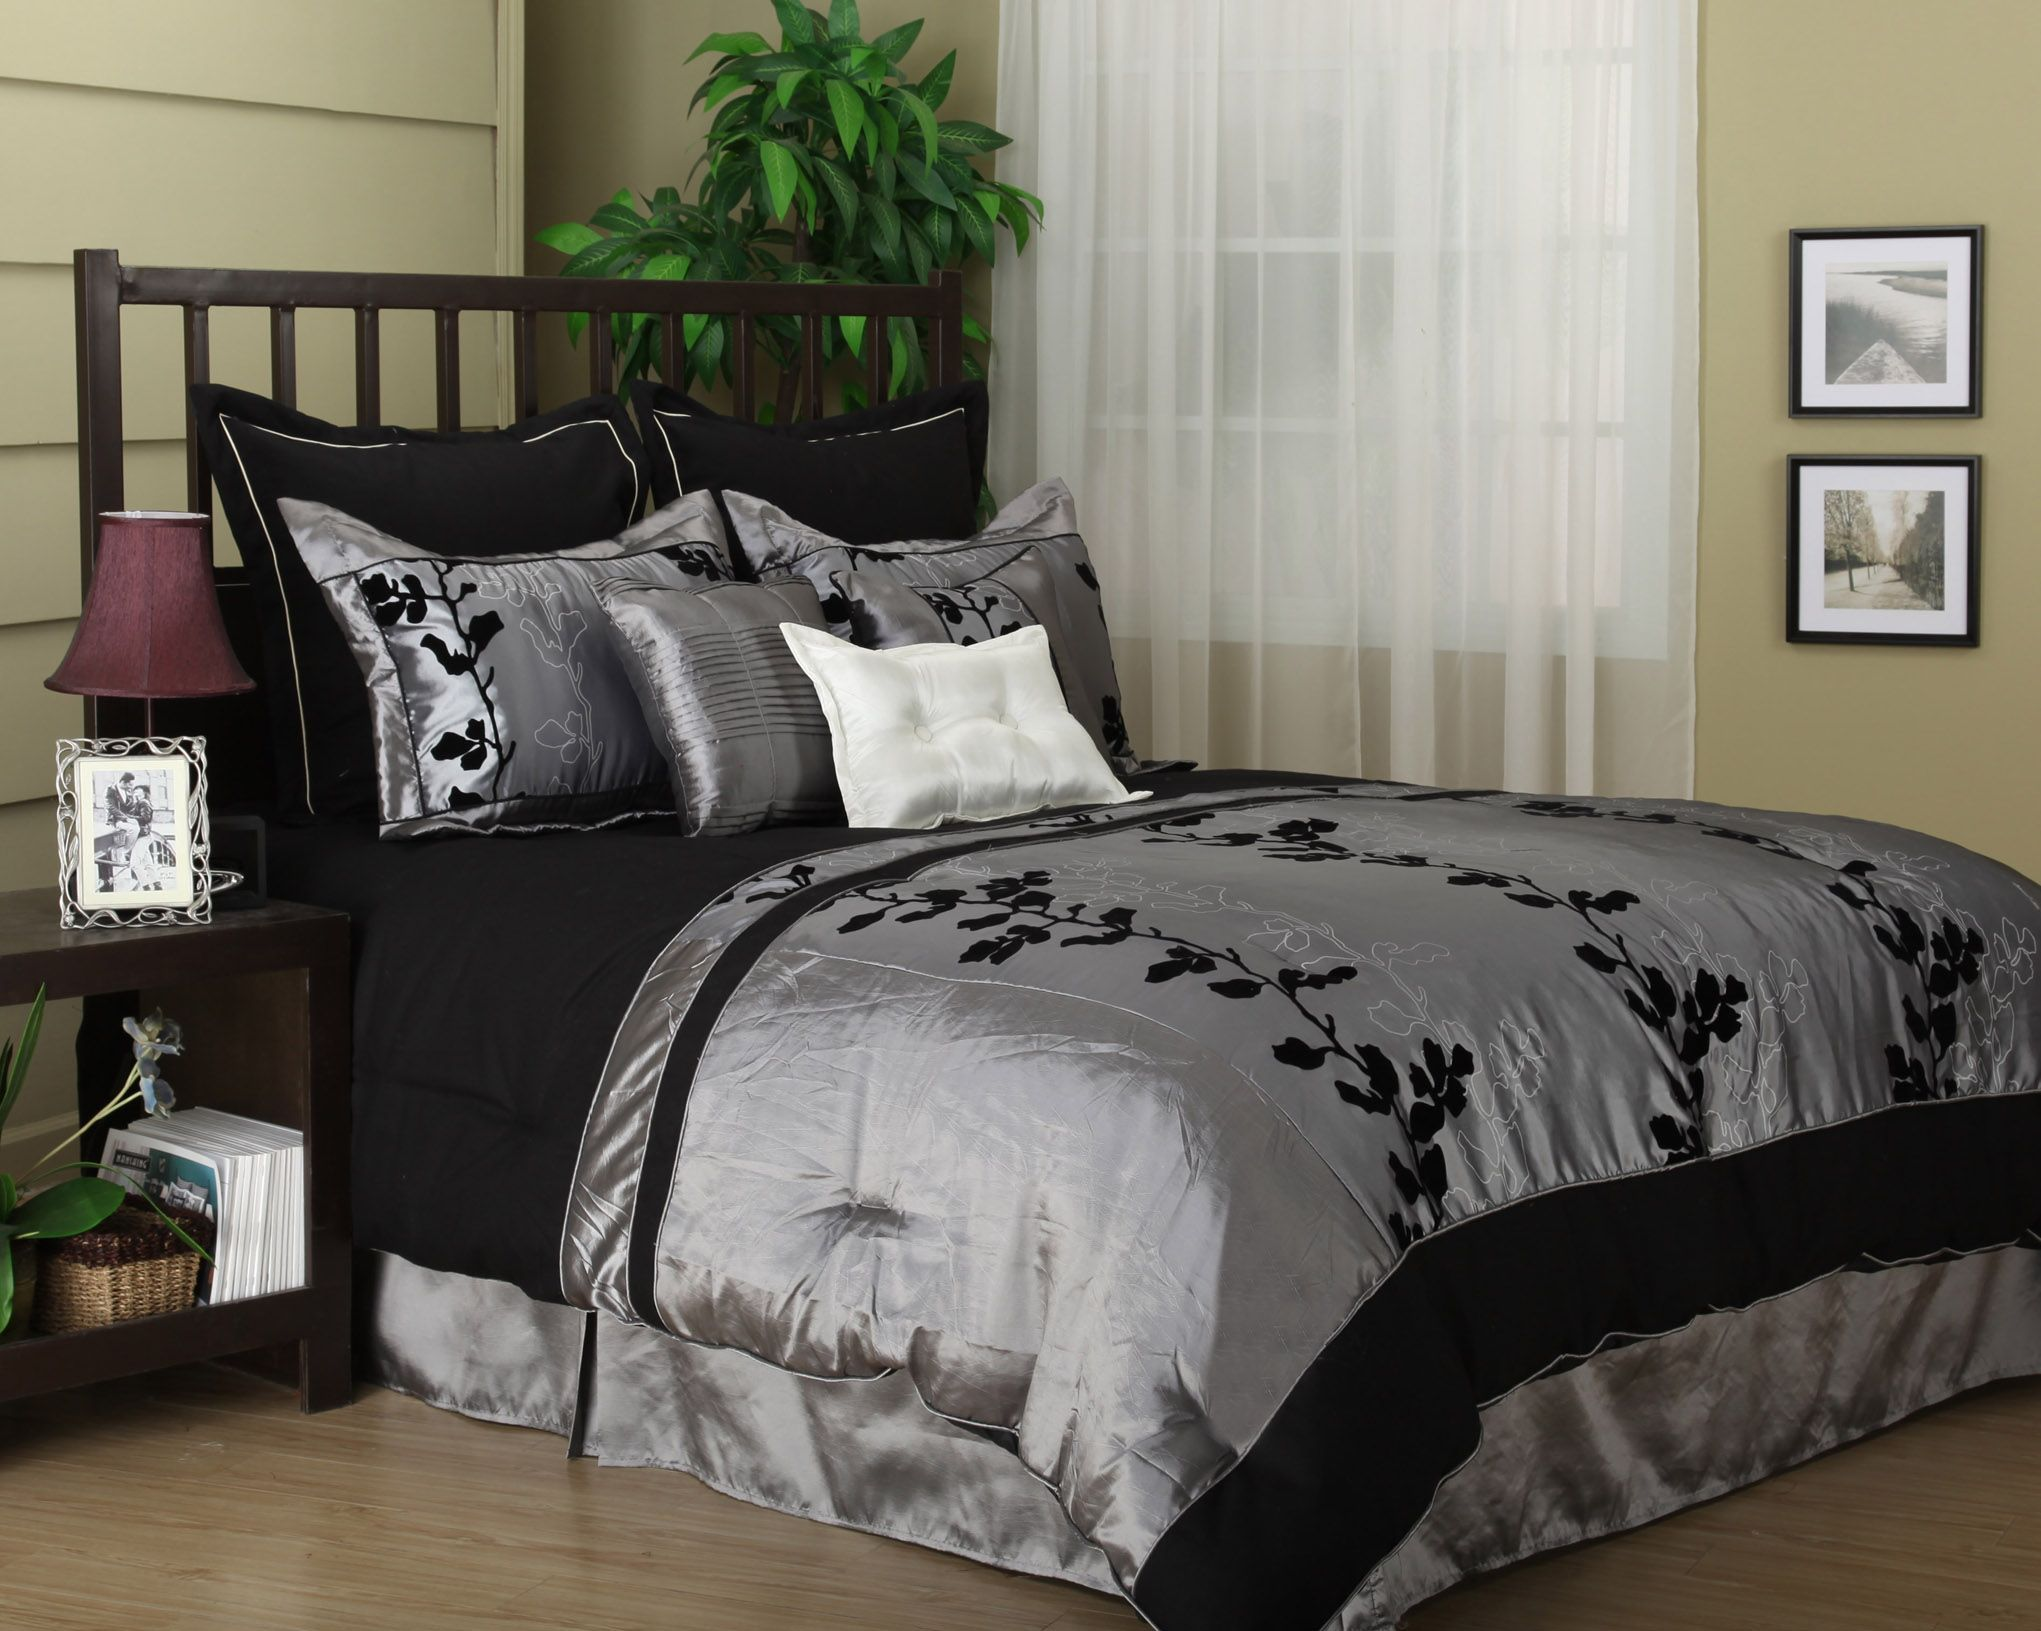 Best Wendy Silver Black 7 Piece Comforter Set Bed In A Bag King 640 x 480